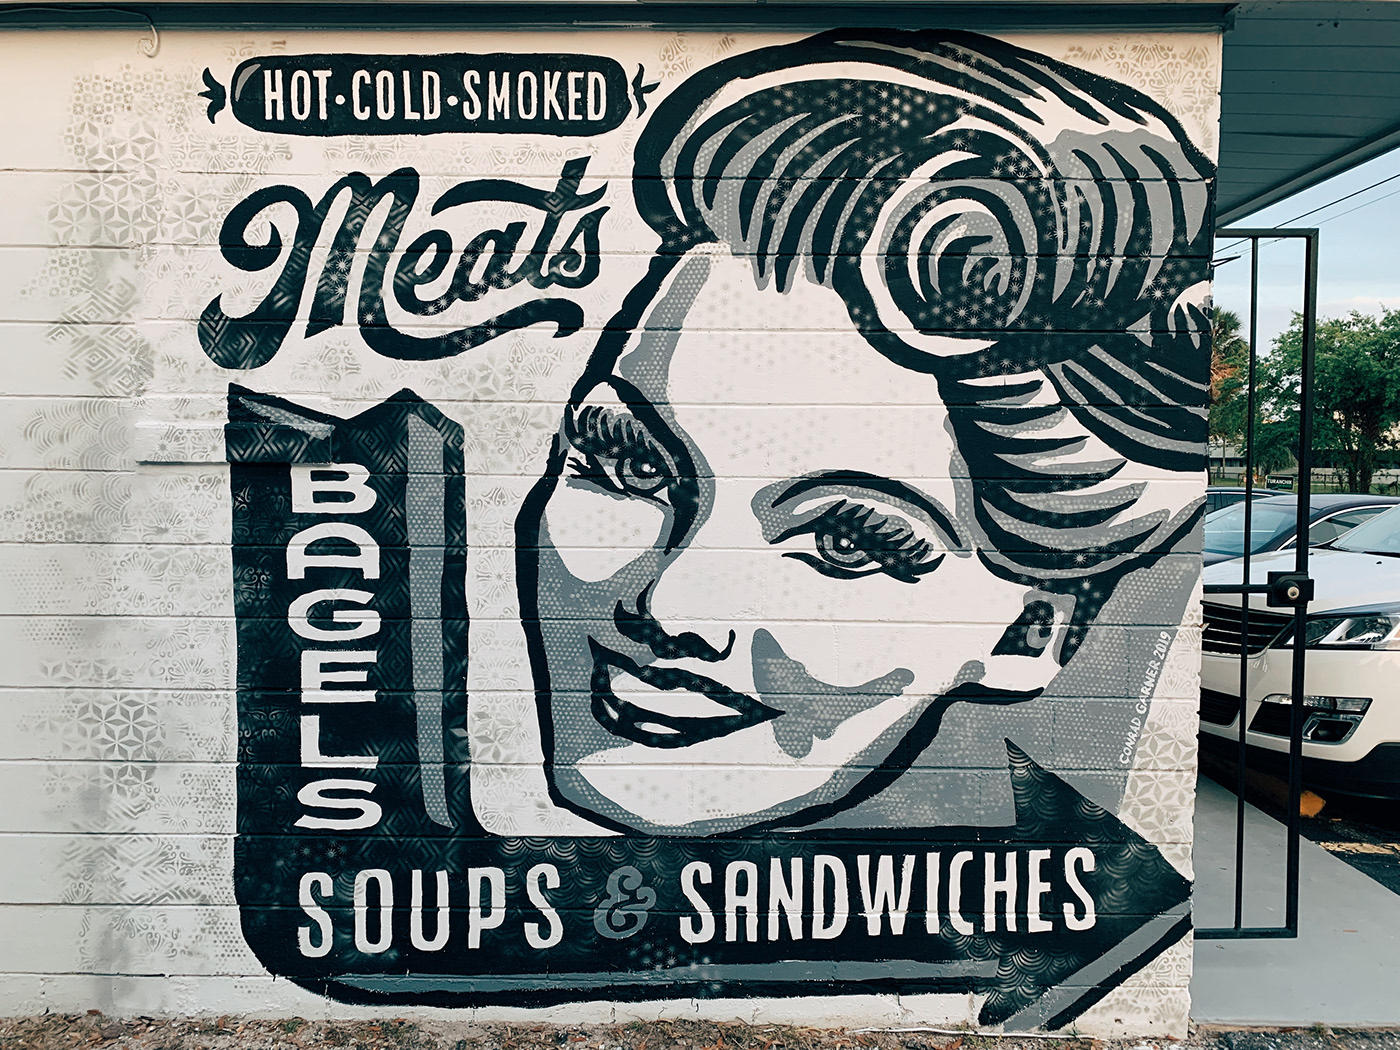 vintage deli texture Mural smoked meats cass street deli tampa florida Classic grayscale